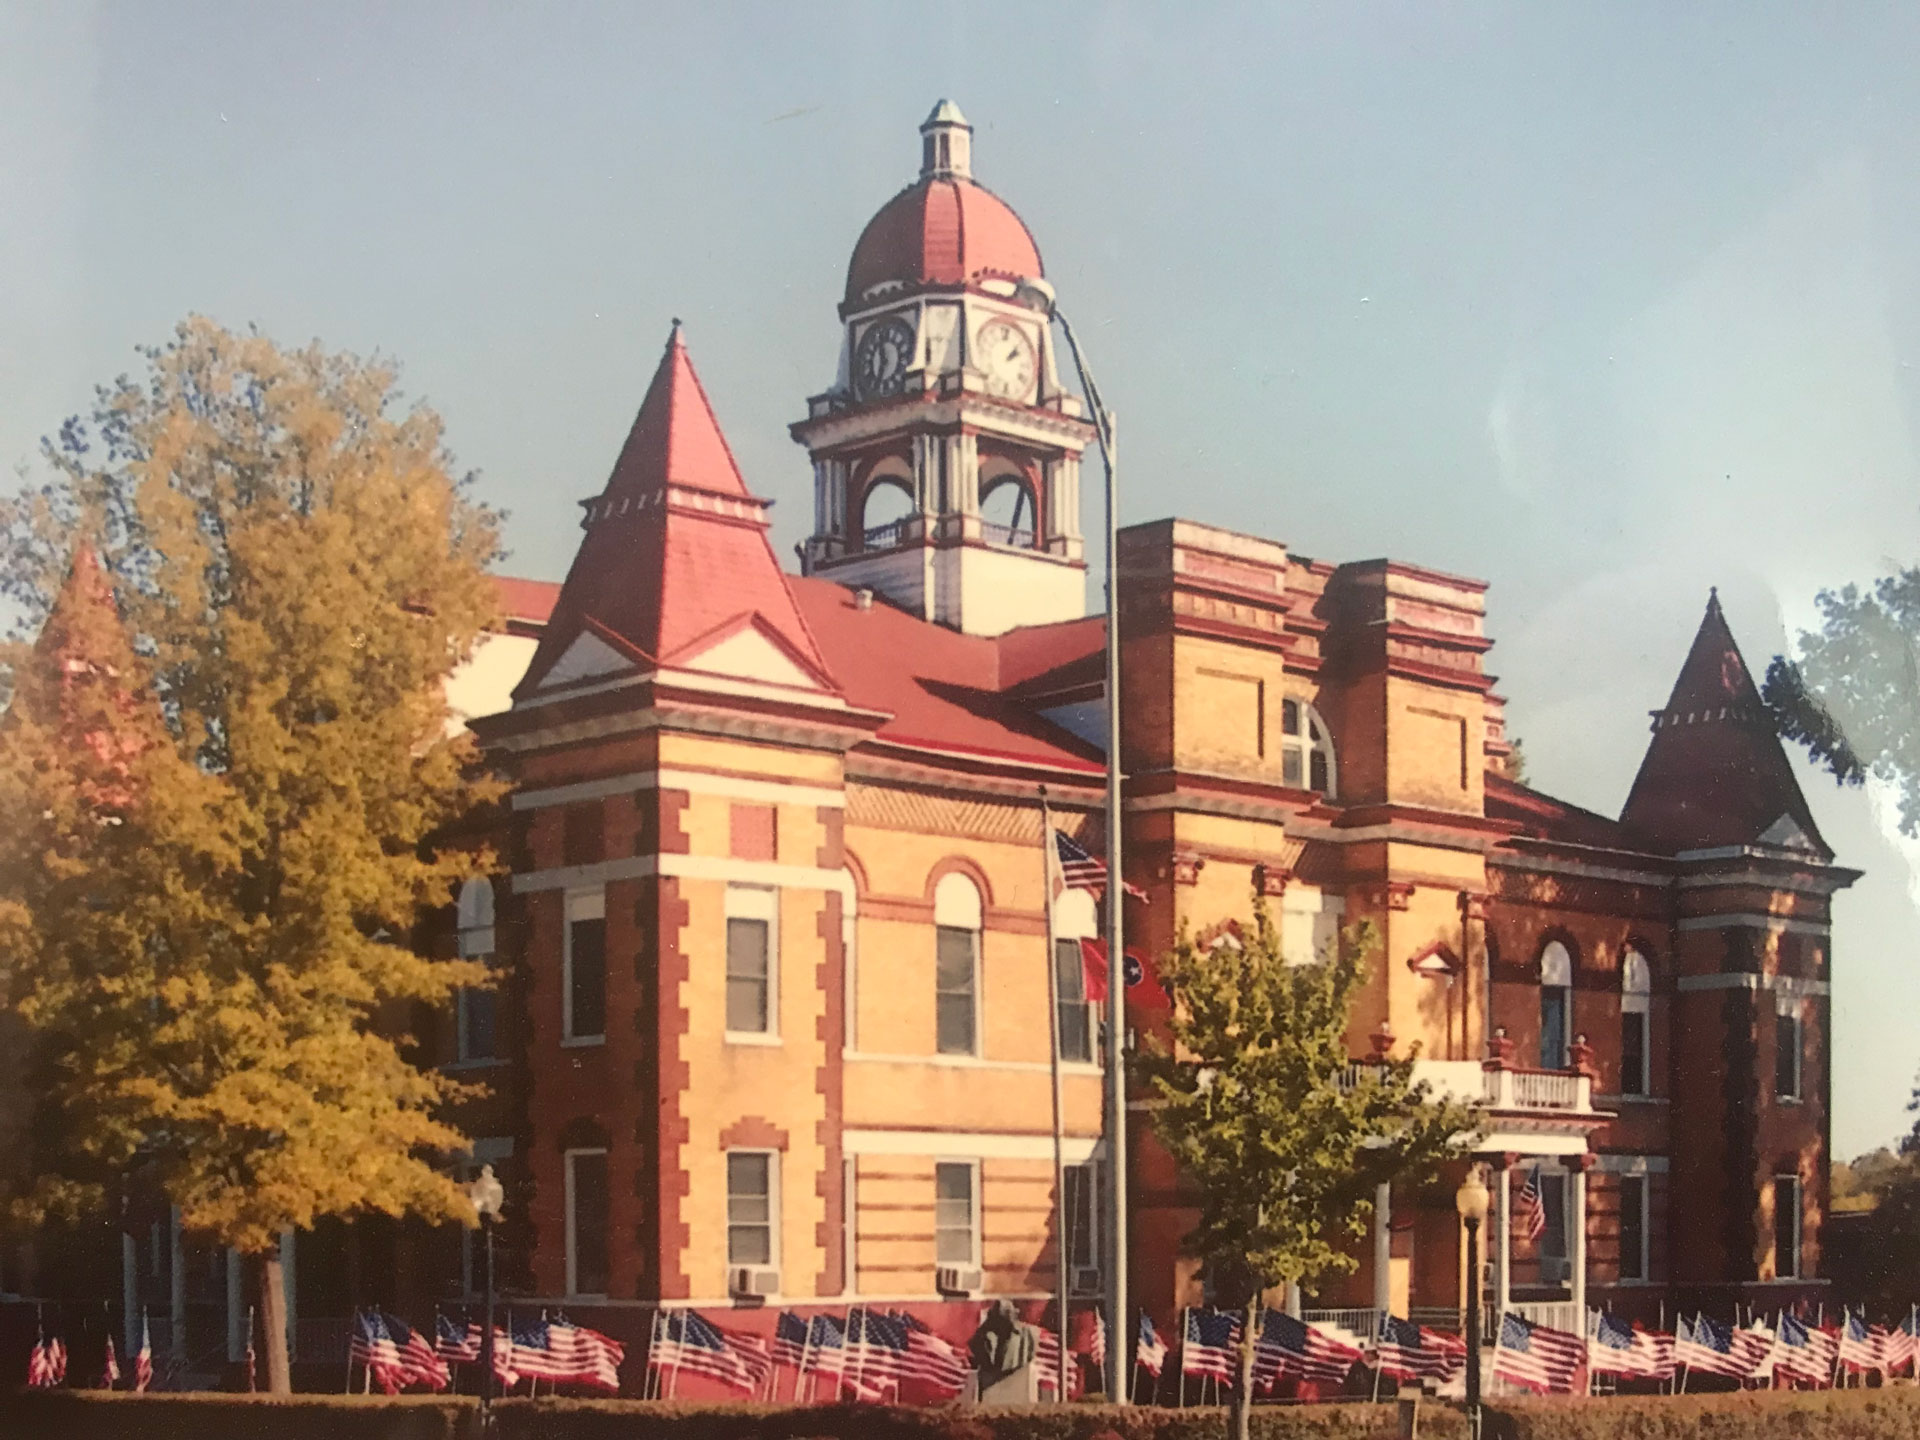 Old picture of the Trenton TN Downtown Courthouse